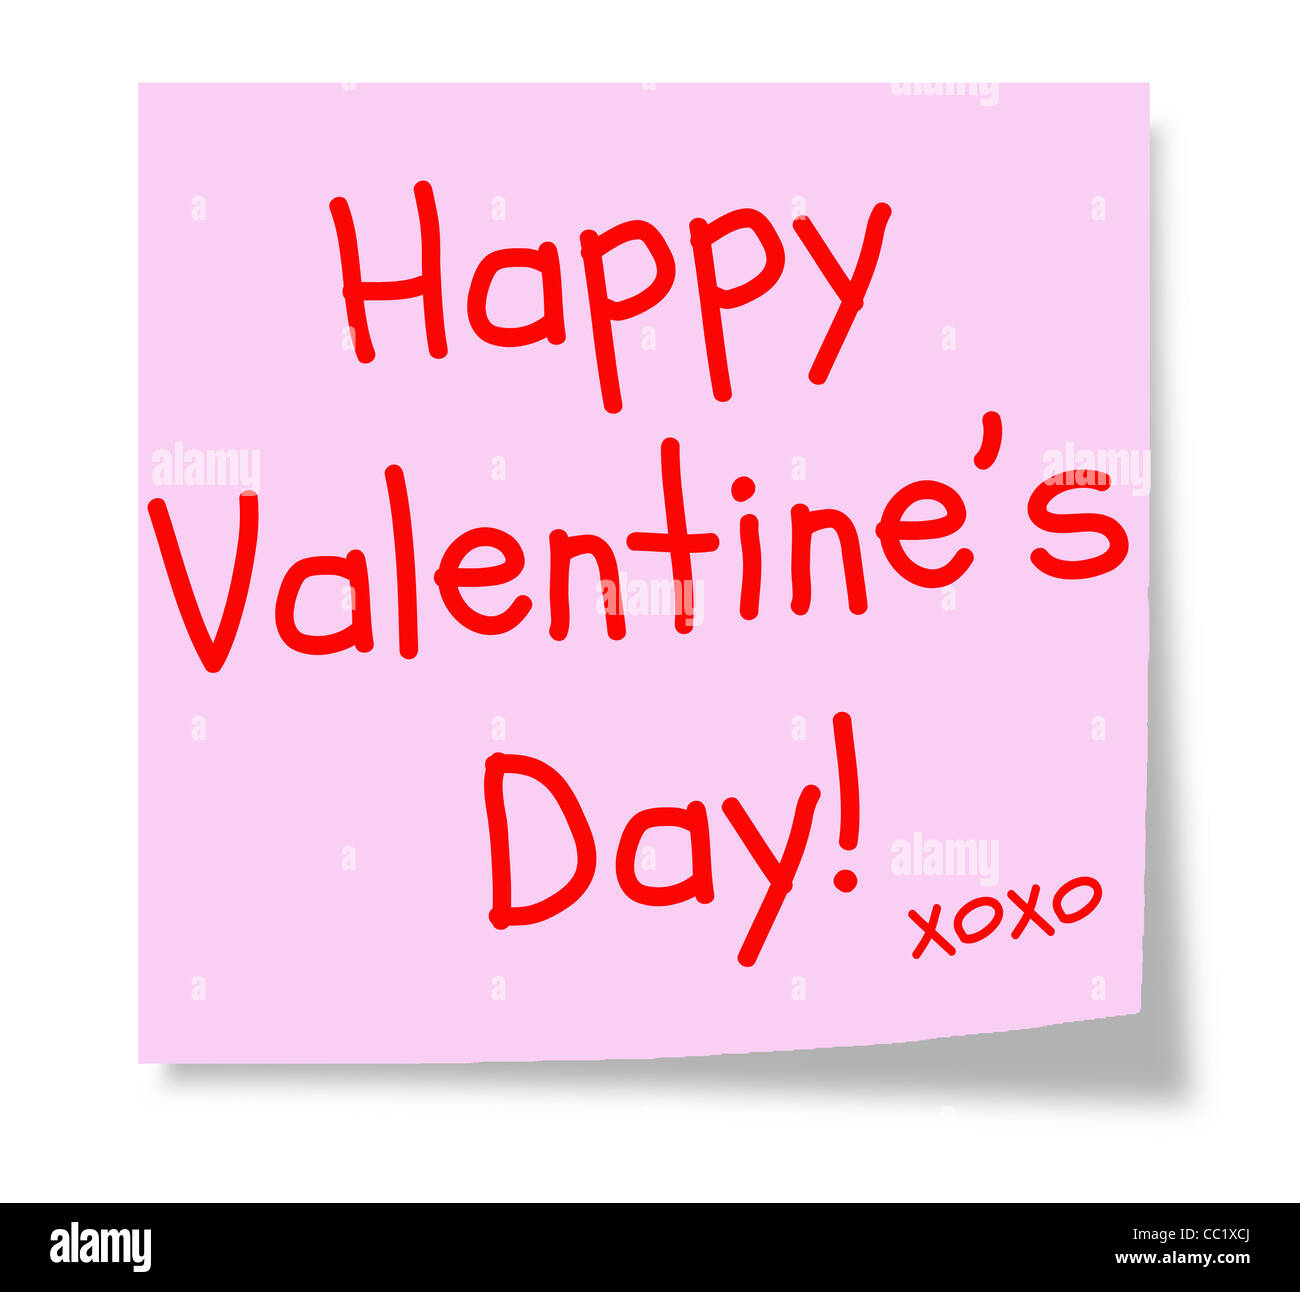 A Pink Sticky Note With The Words Happy Valentine S Day And Xoxo